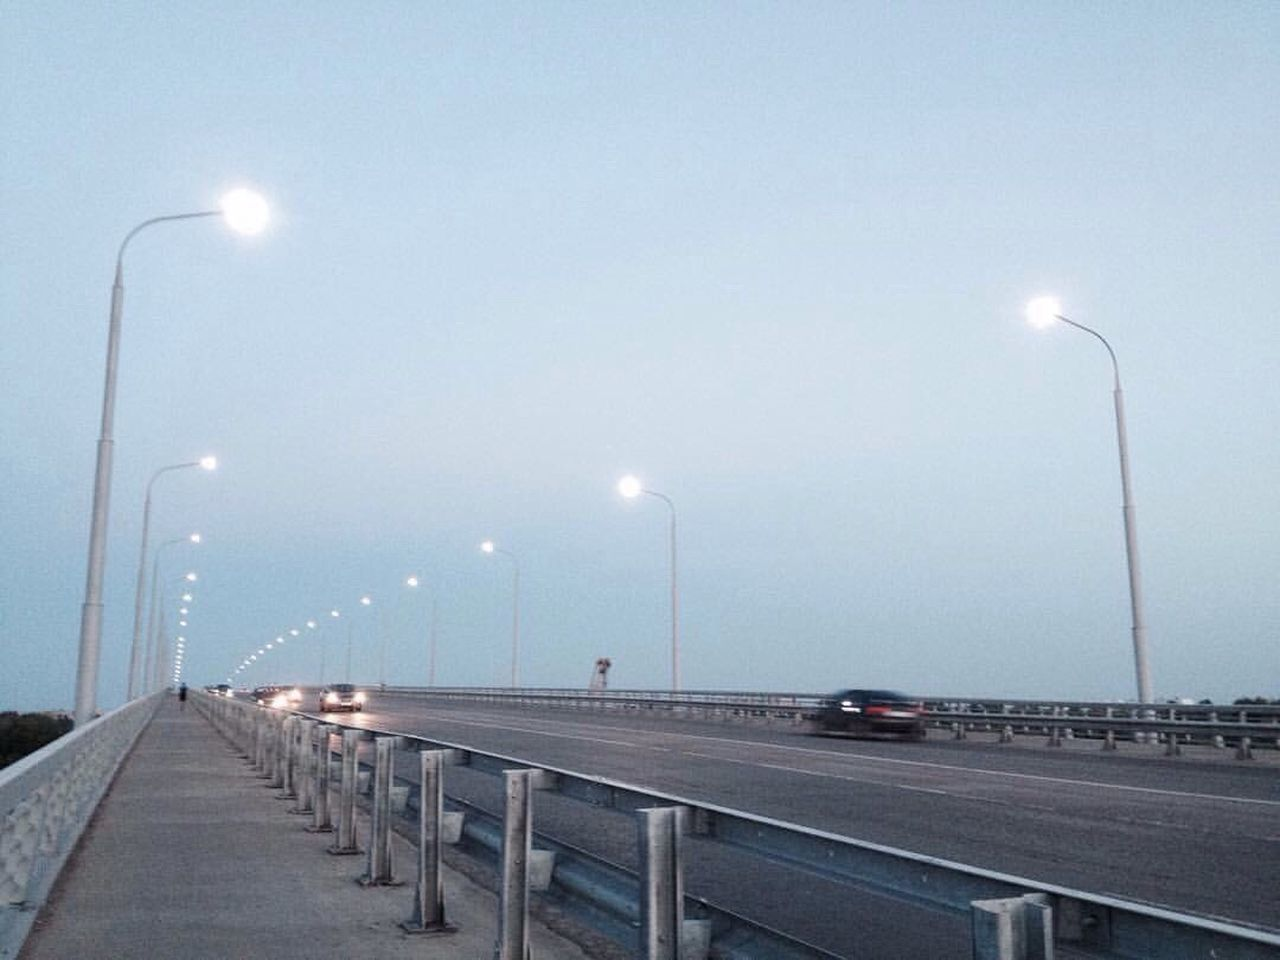 illuminated, street light, lighting equipment, transportation, road, night, railing, the way forward, outdoors, no people, car, built structure, architecture, clear sky, sky, nature, city